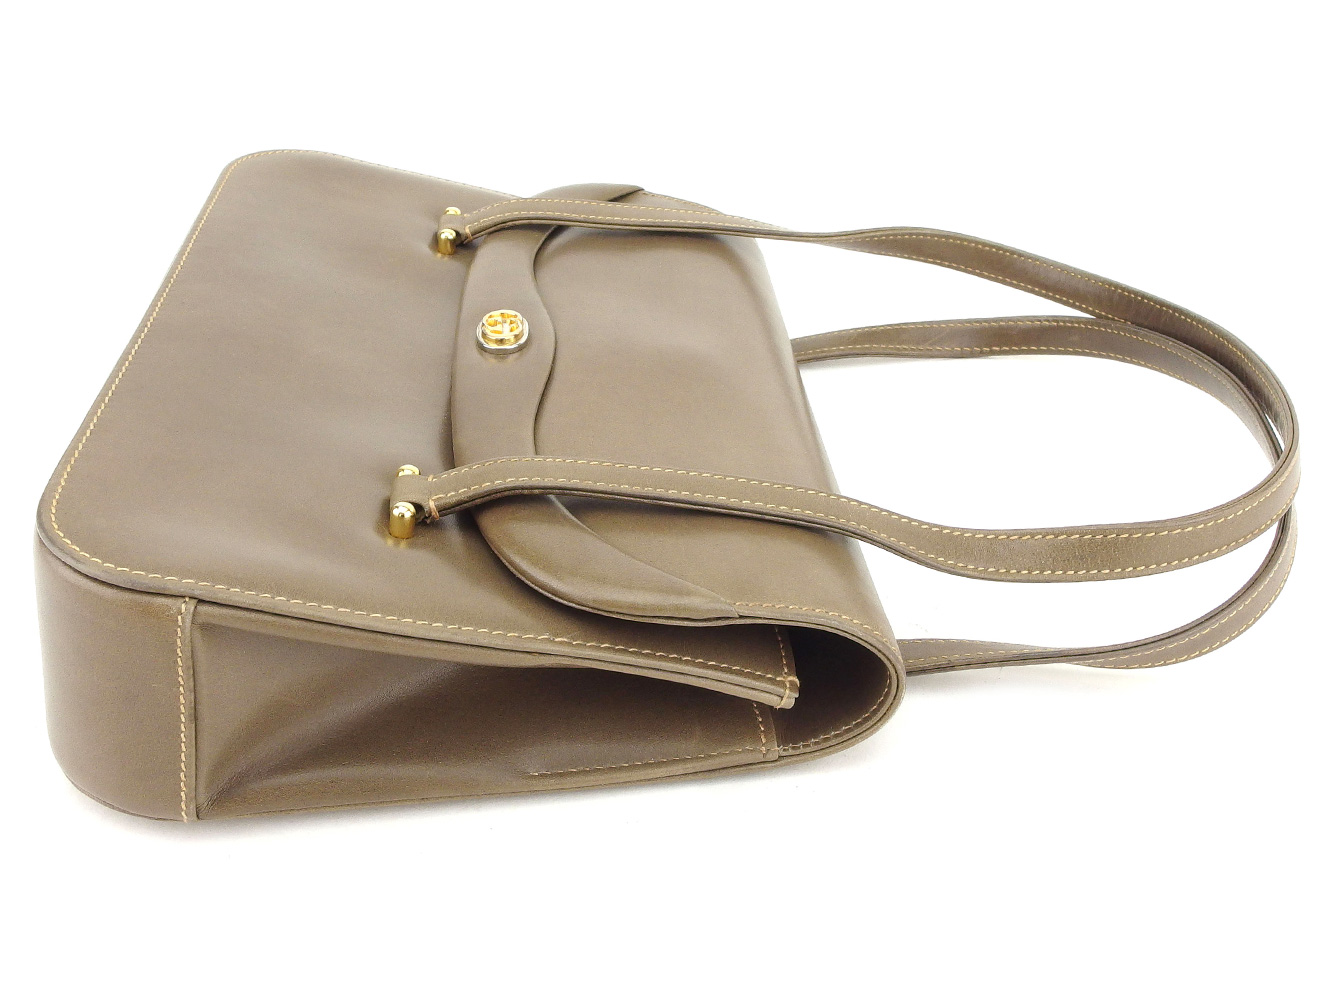 c4ae07b4482445 Gucci GUCCI handbag bag lady old Gucci double G brown gold silver leather  vintage quality goods T8715